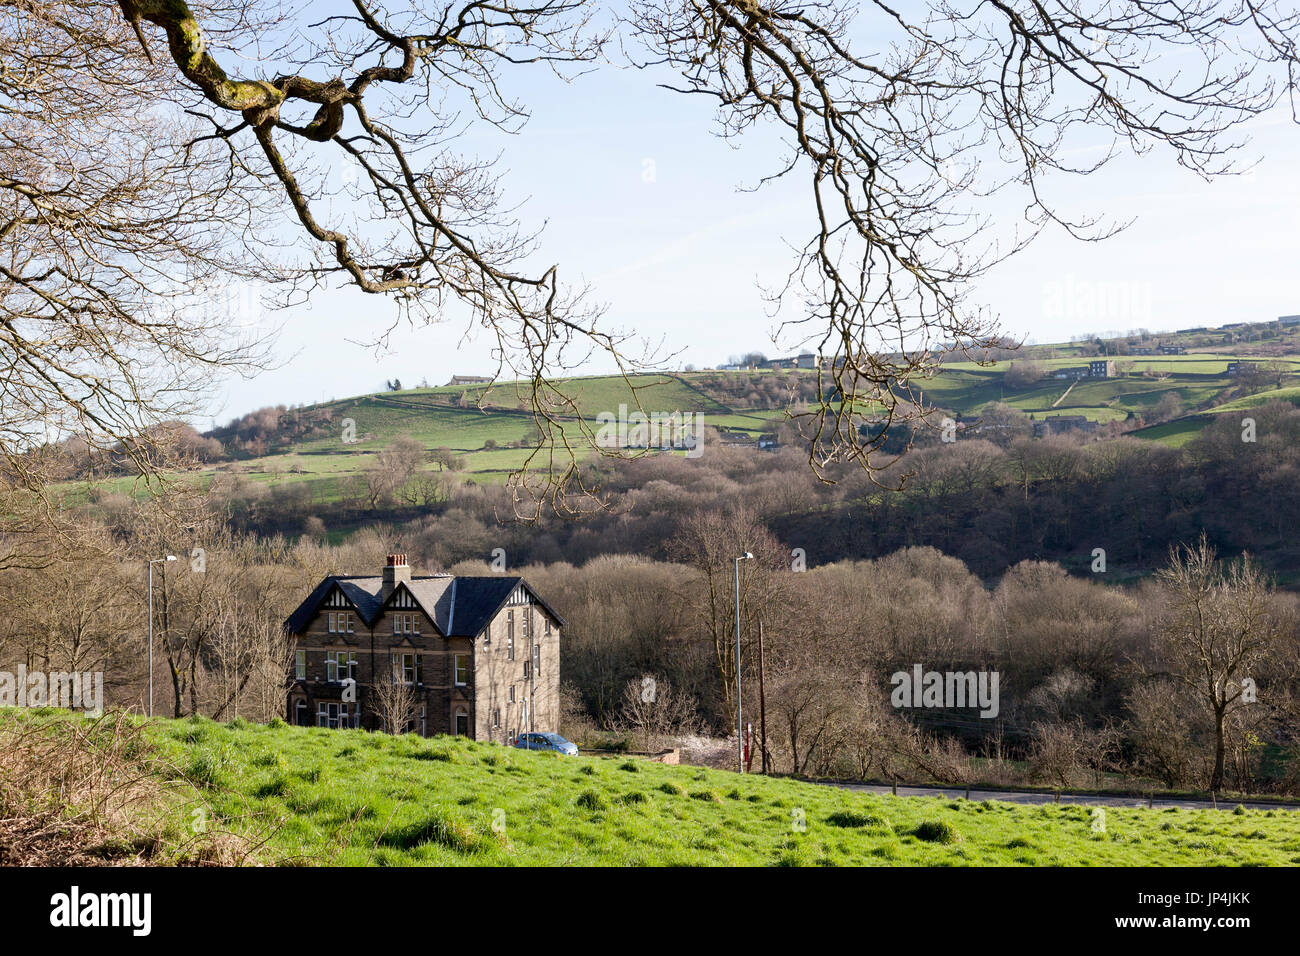 Large Victorian house in the countryside, Luddenden Foot, West Yorkshire - Stock Image